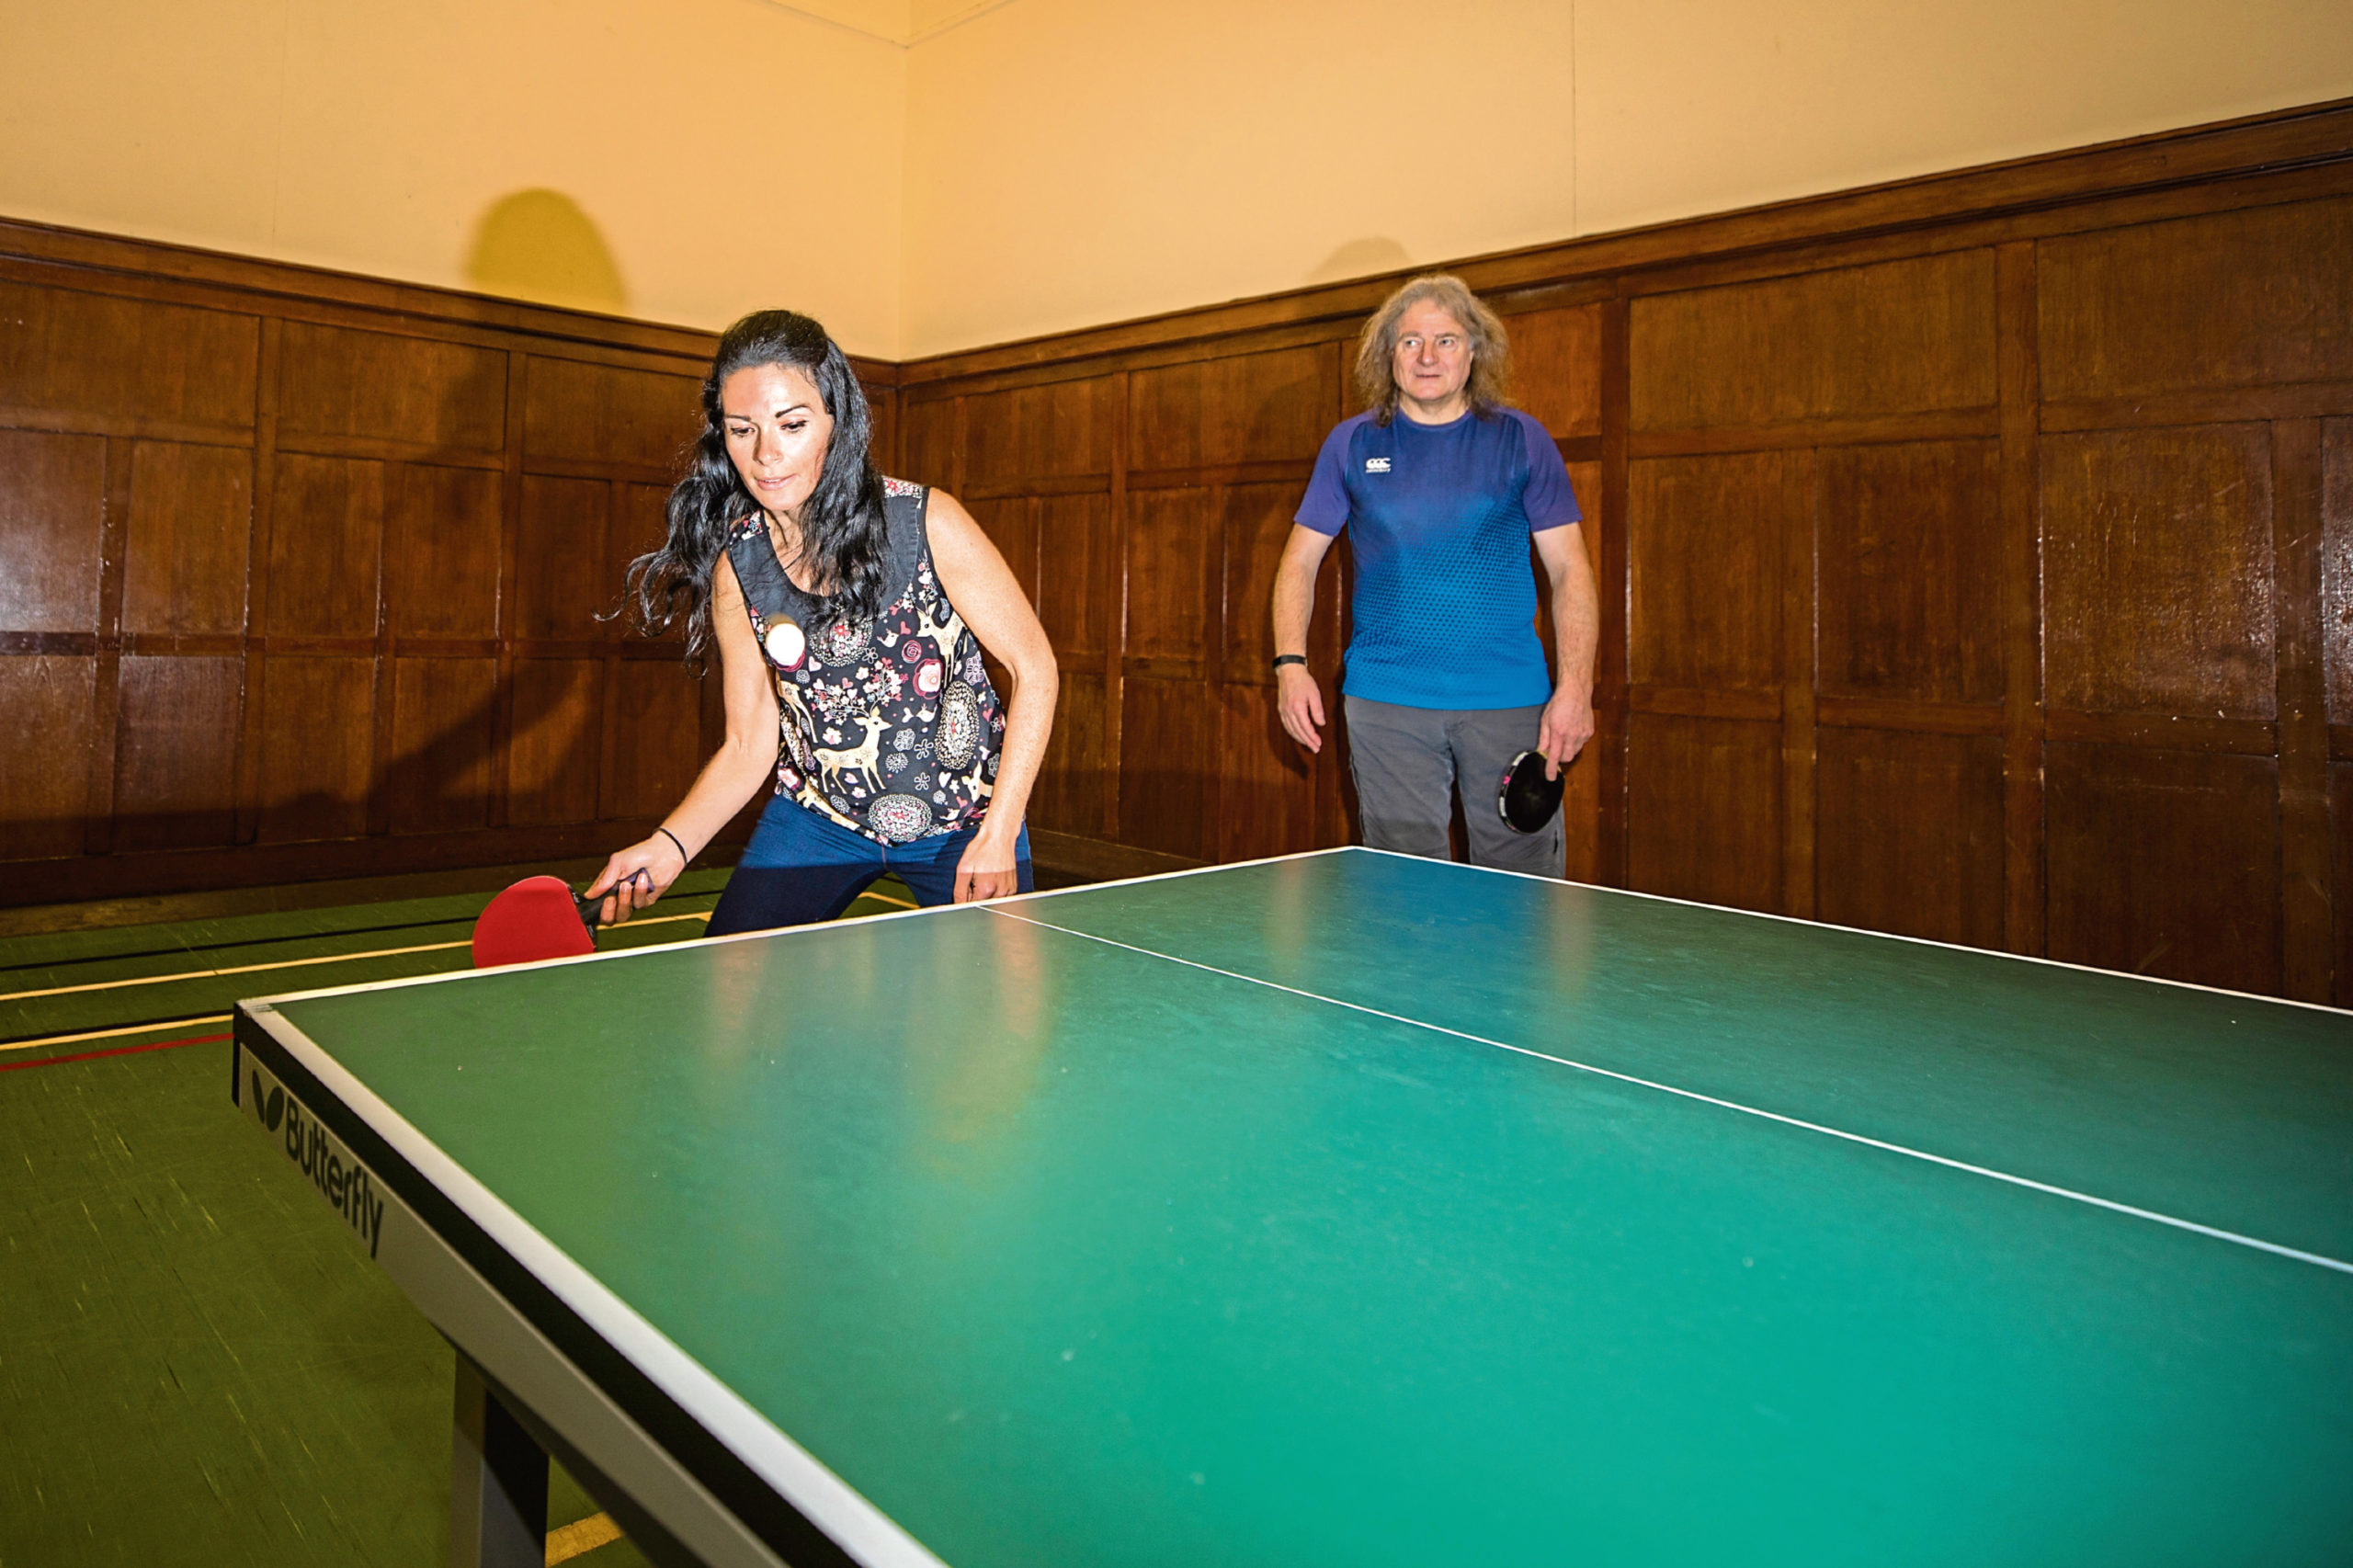 Gayle has a bash at table tennis with Dundee and District Table Tennis Association and is given some tips from Arthur Pritchard.